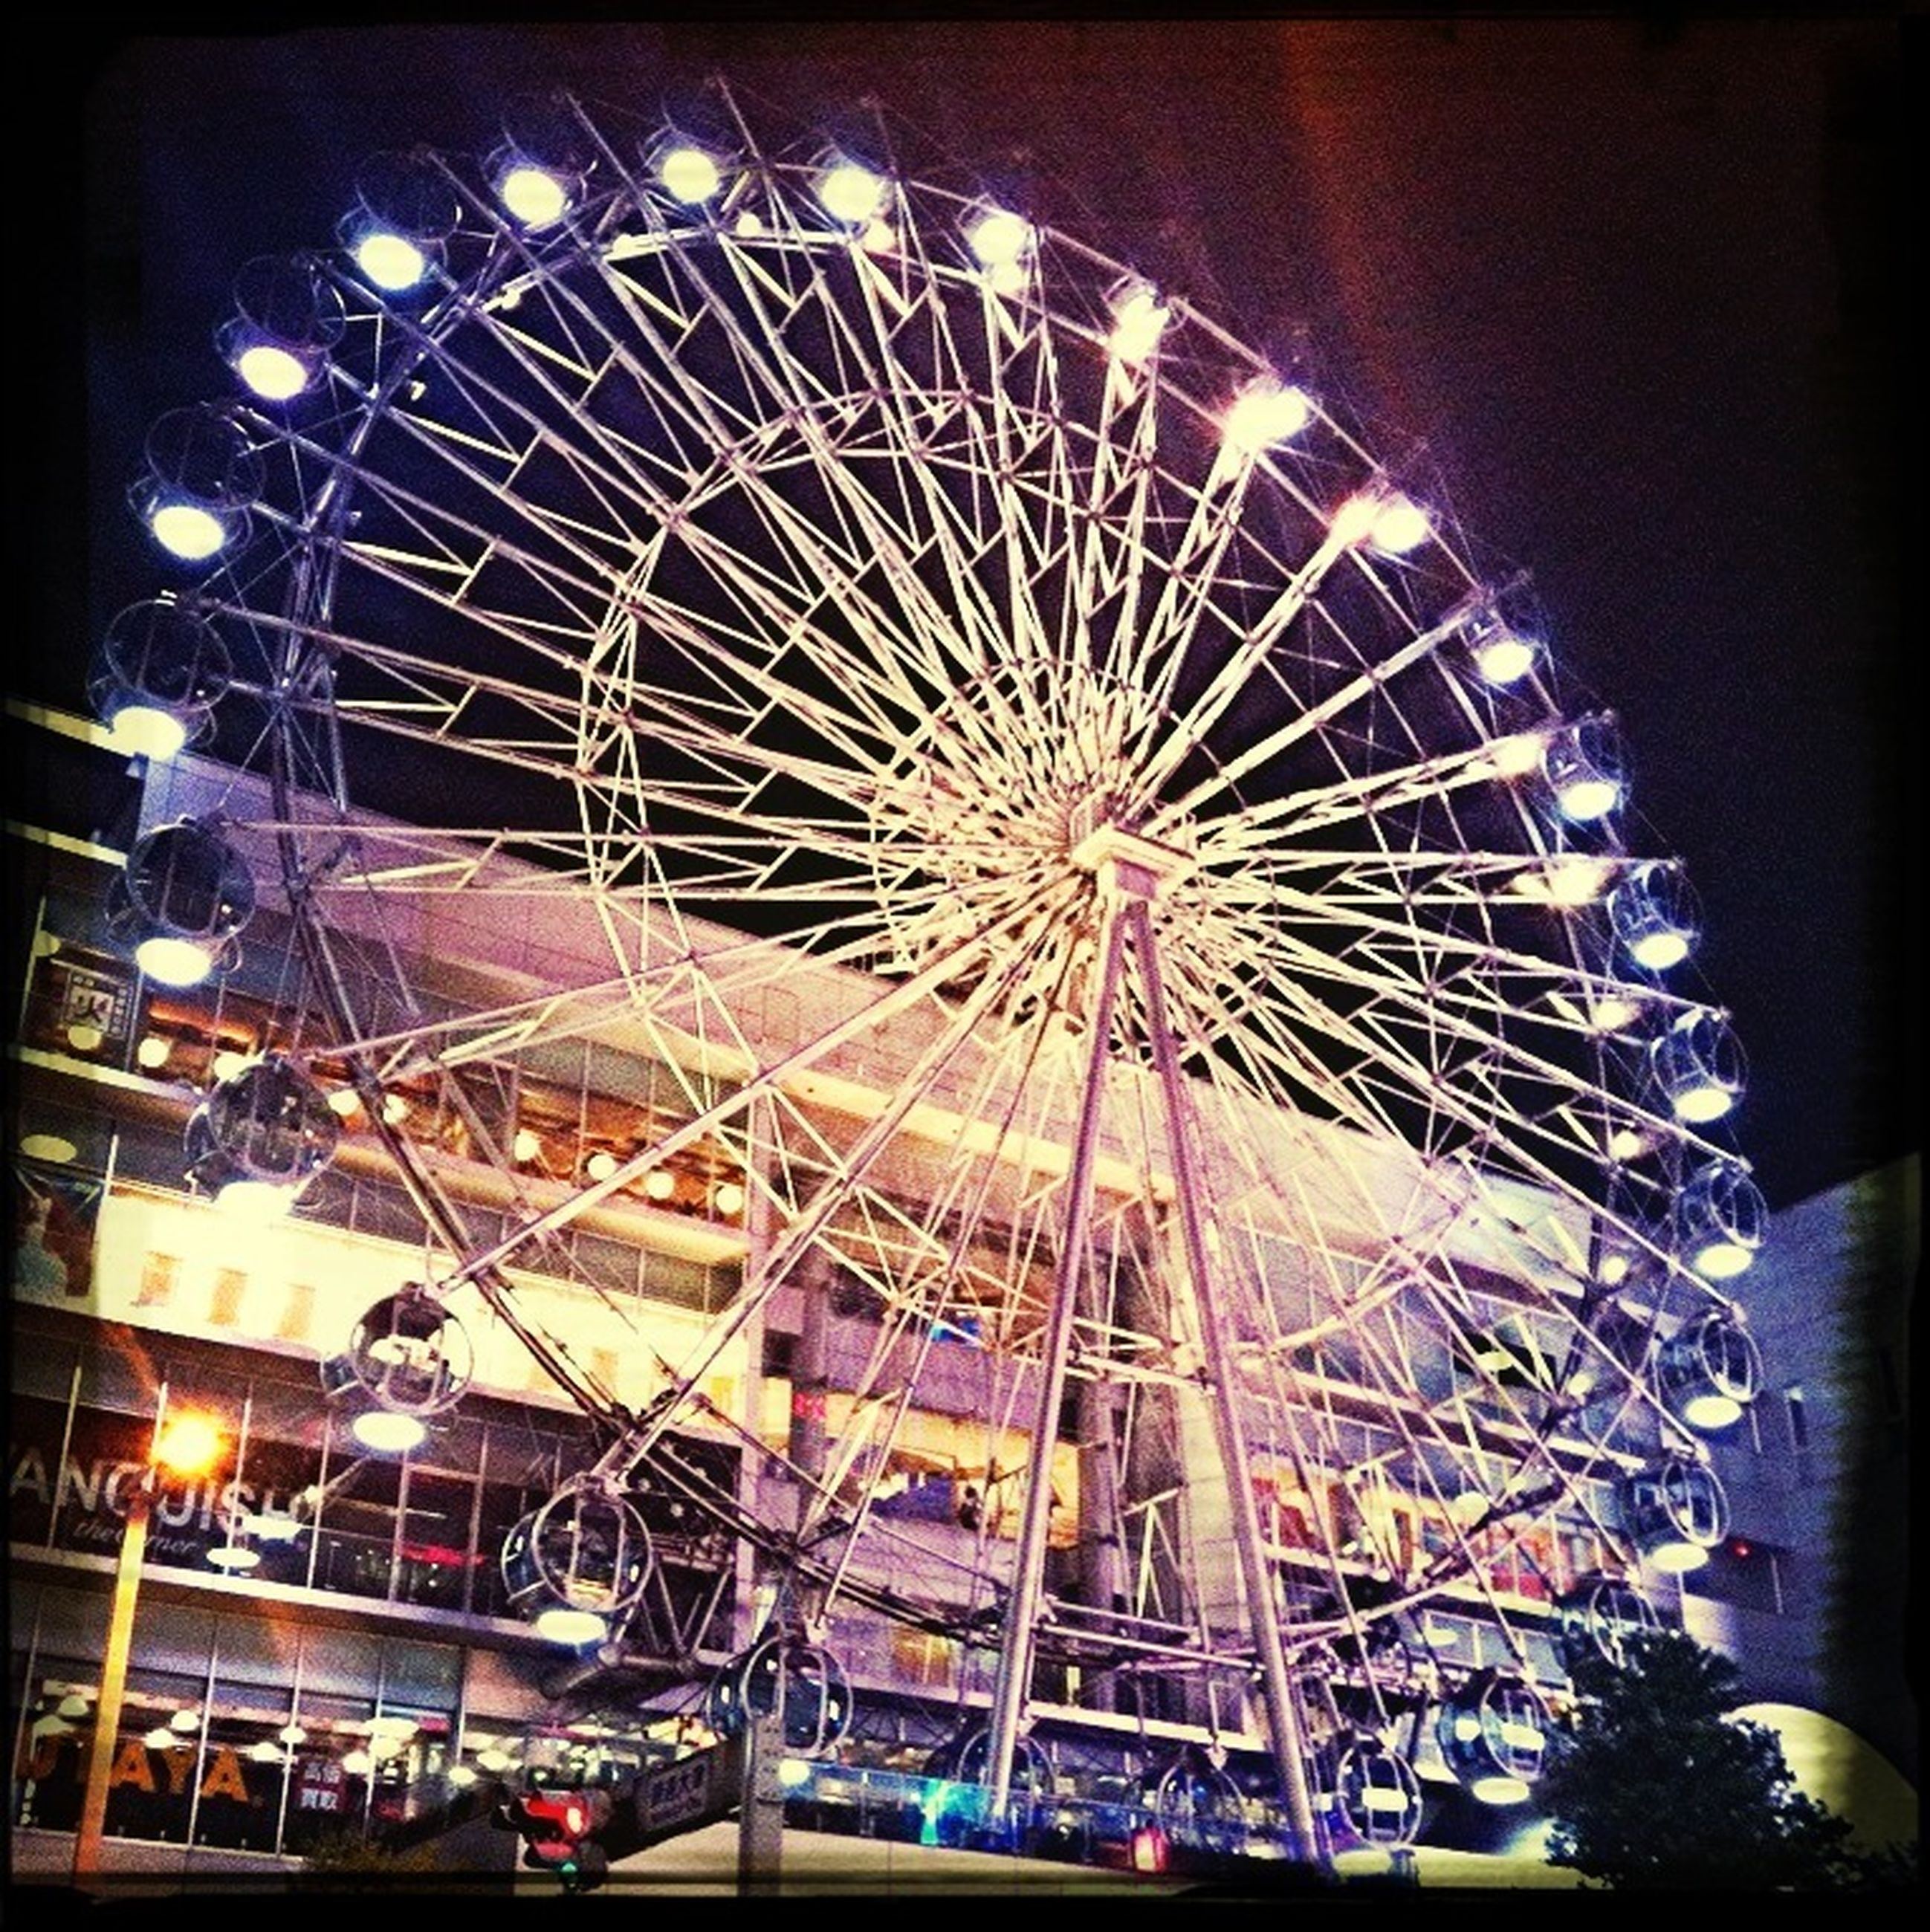 arts culture and entertainment, amusement park, amusement park ride, ferris wheel, transfer print, night, illuminated, low angle view, sky, built structure, incidental people, auto post production filter, fun, enjoyment, architecture, motion, traveling carnival, outdoors, leisure activity, big wheel